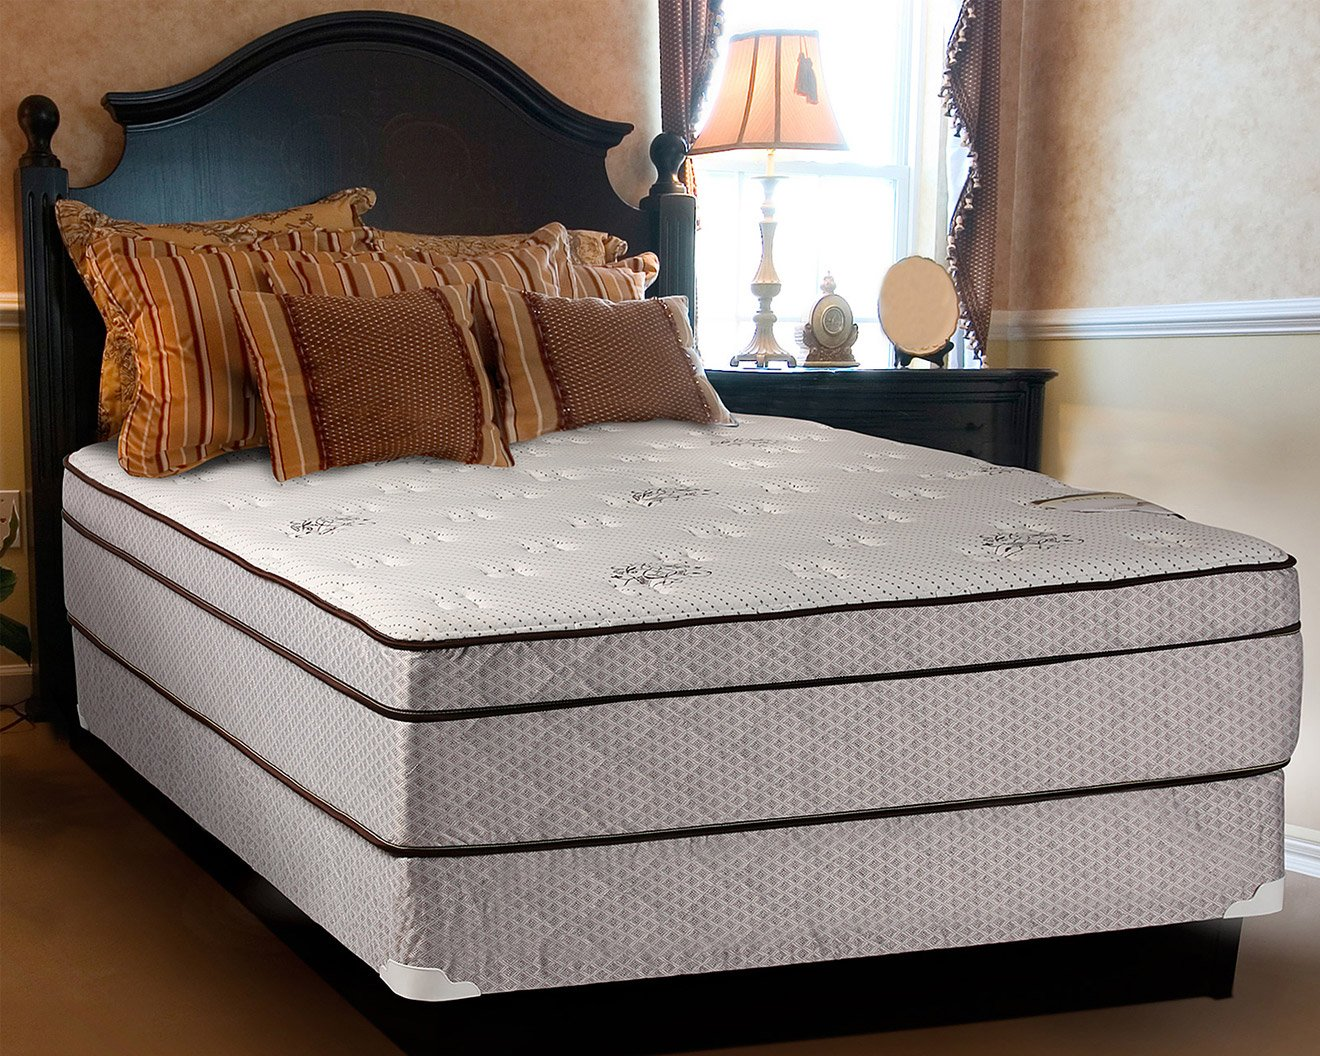 inch kurl full set for deals memory low costco queen plush sets and desire mattress best with foam top profile sale considering buy double single only twin cos pillow size on measurements of box furniture spring boxspring sears king cheap